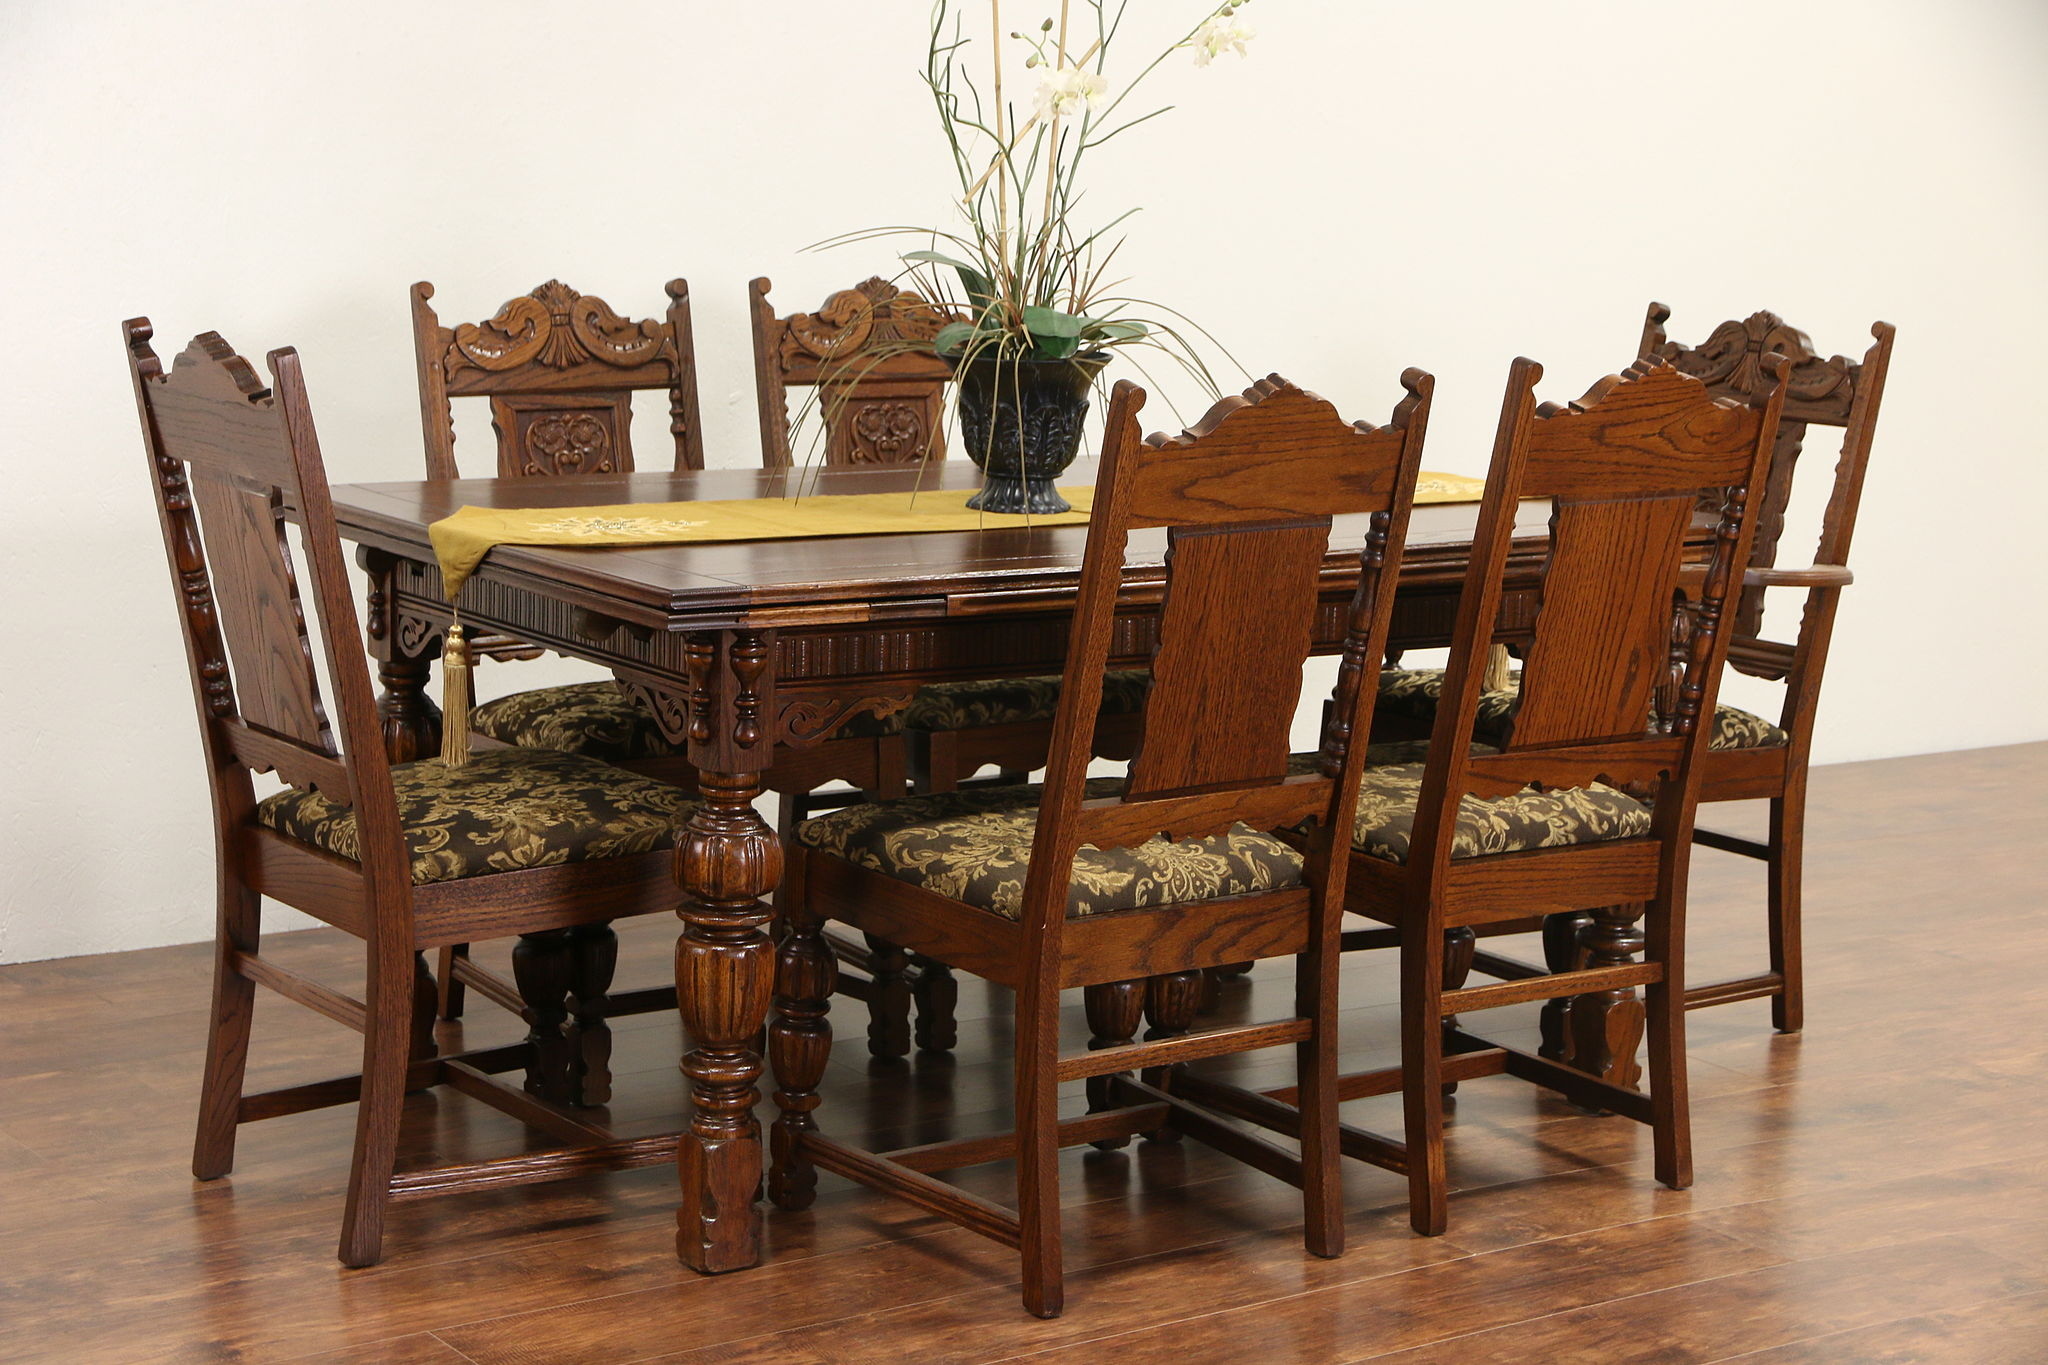 Sold English Tudor 1920 Antique Carved Oak Dining Set Table 6 Chairs Harp Gallery Antiques Furniture